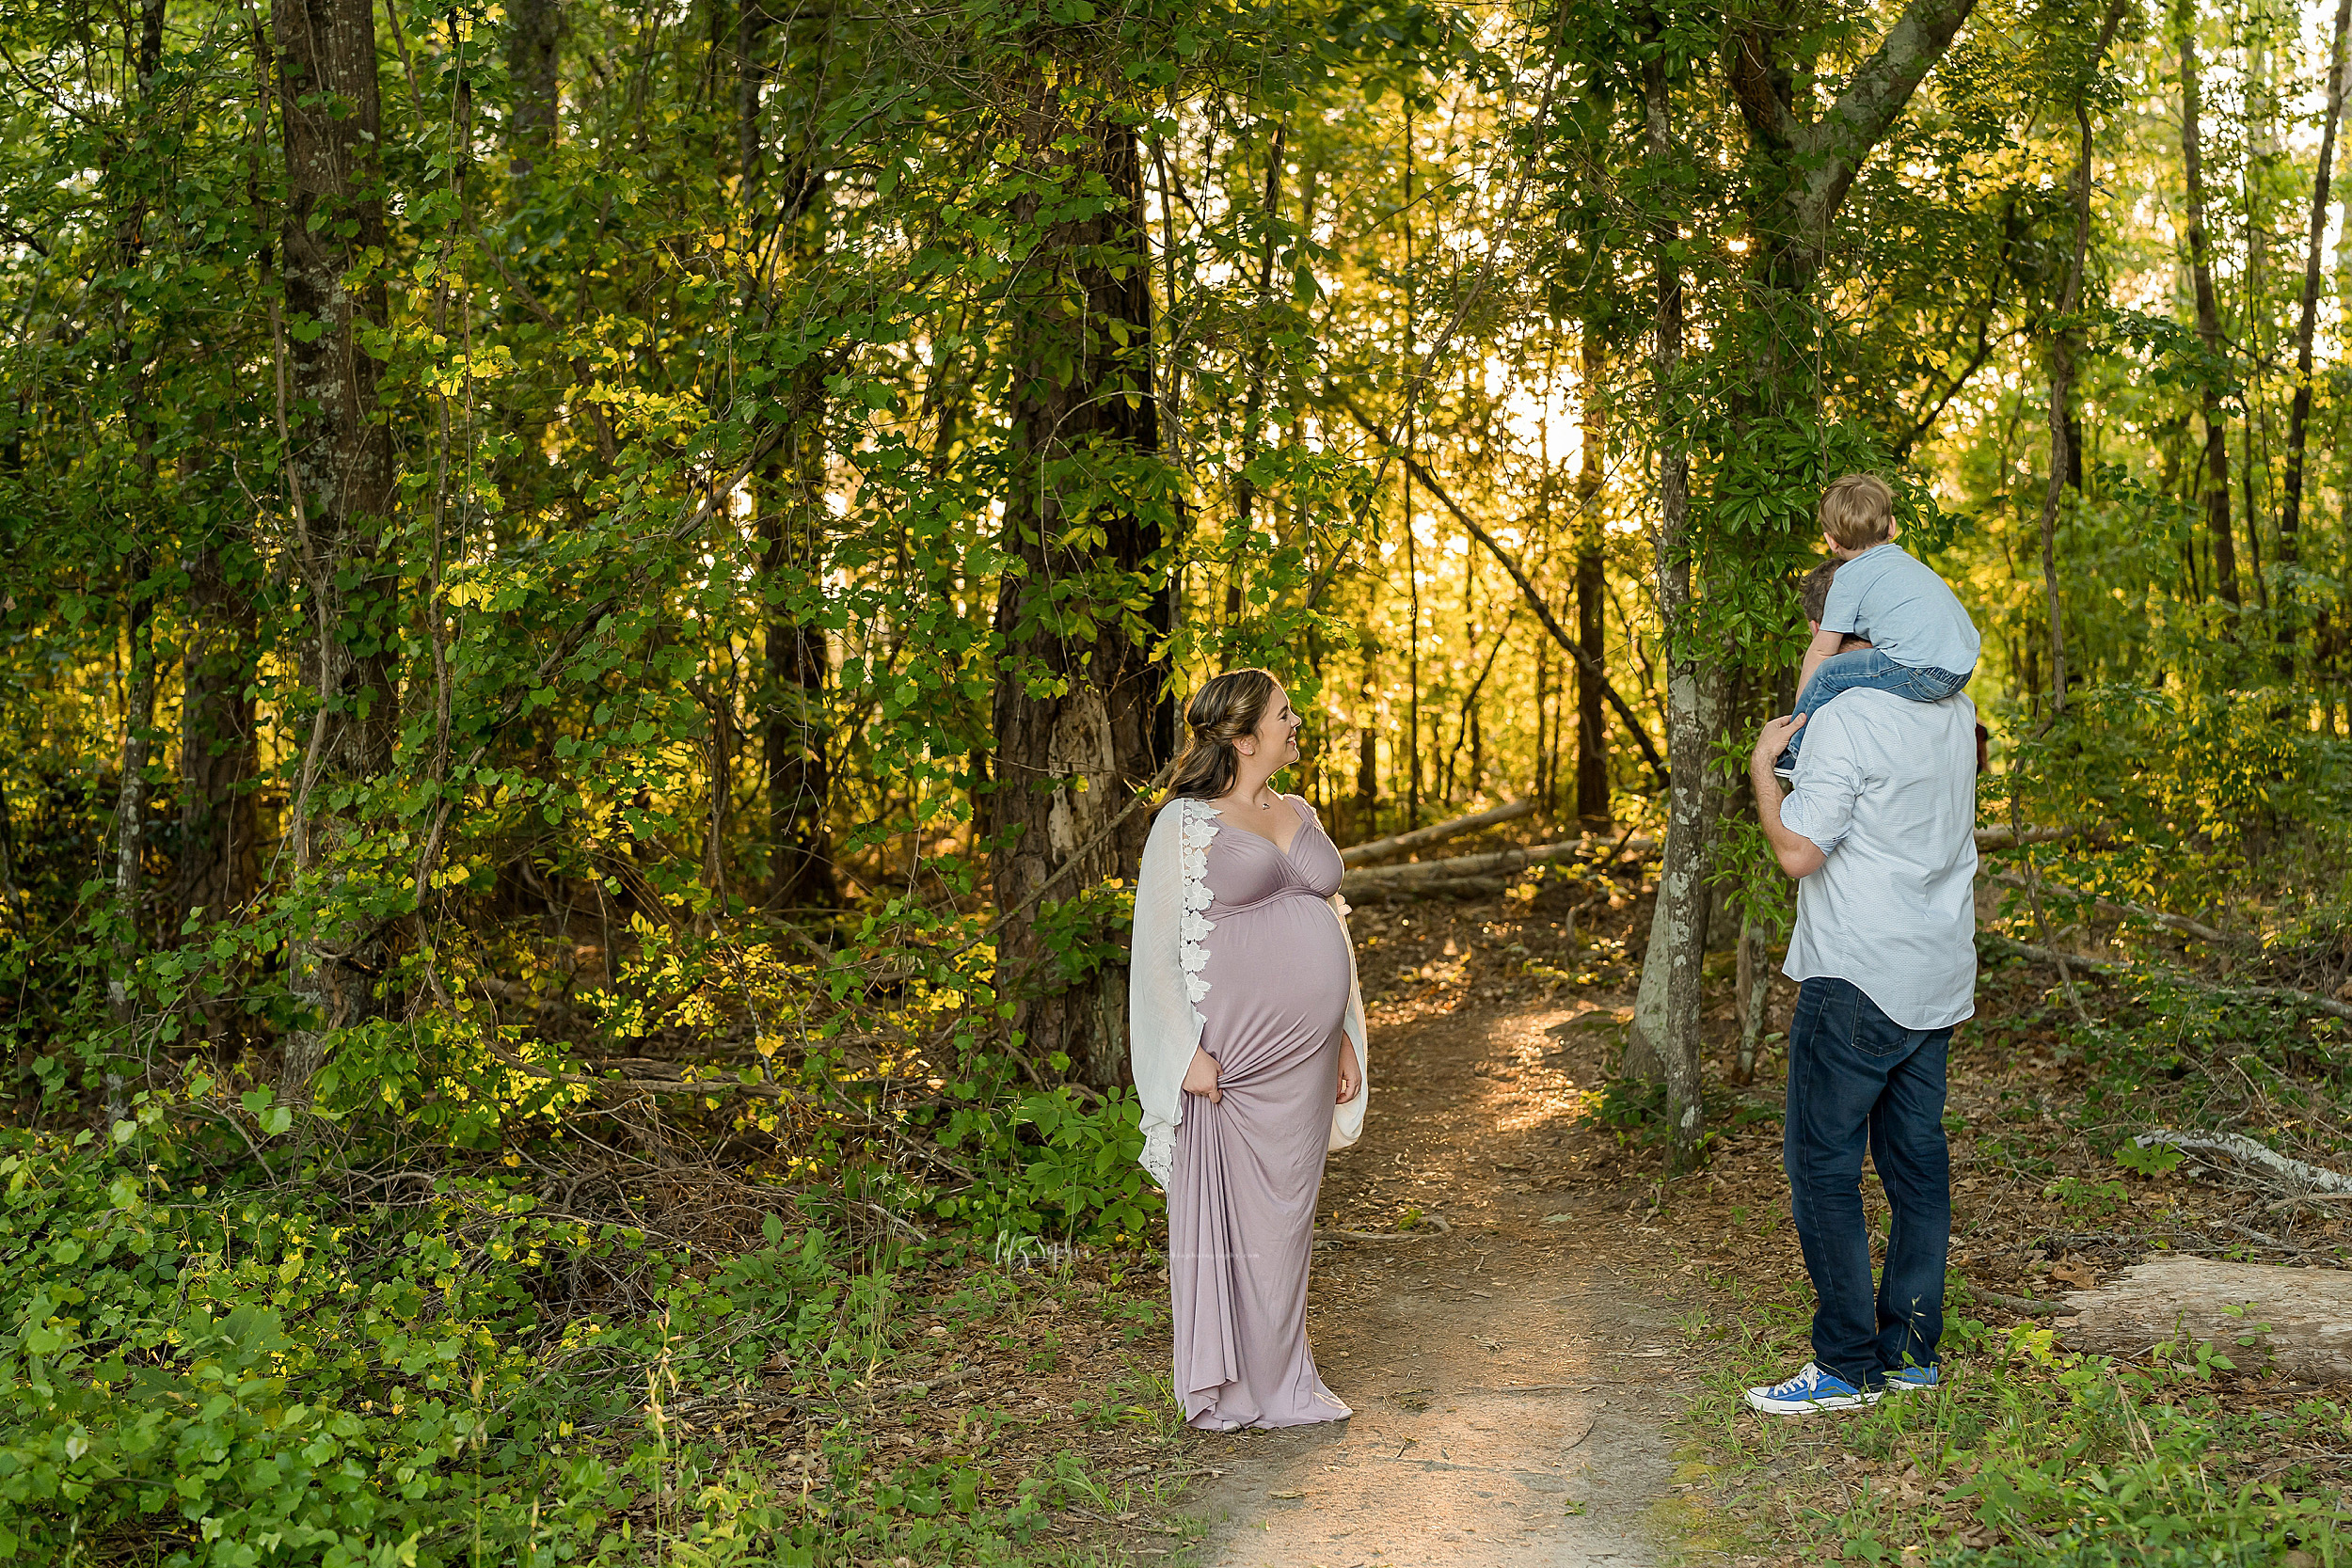 atlanta-brookhaven-decatur-candler-park-sandy-springs-buckhead-virginia-highlands-west-end-decatur-lily-sophia-photography-family-big-brother-expecting-newborn-baby-girl-couples-family-maternity-outdoor-session_1594.jpg